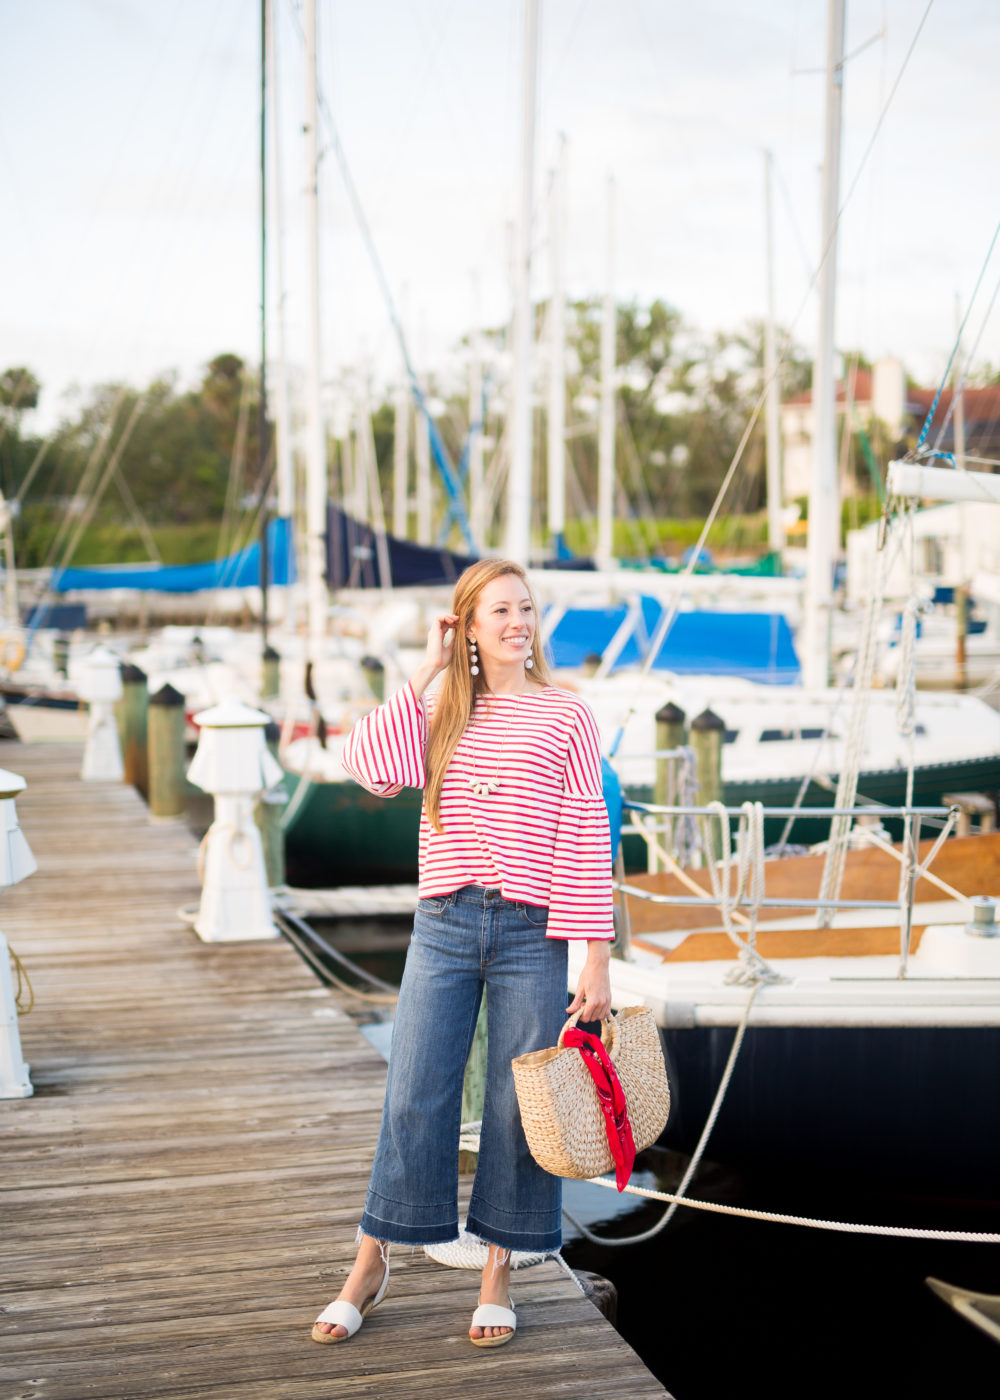 How to Dress Preppy on a Budget / Preppy Women's Outfits / Spring Outfits Preppy / Preppy Outfits Summer / Preppy Essentials / Red Striped Top / Where to Buy Preppy Clothes / Second Hand Preppy Clothes -Sunshine Style, A Florida Fashion and Lifestyle Blog